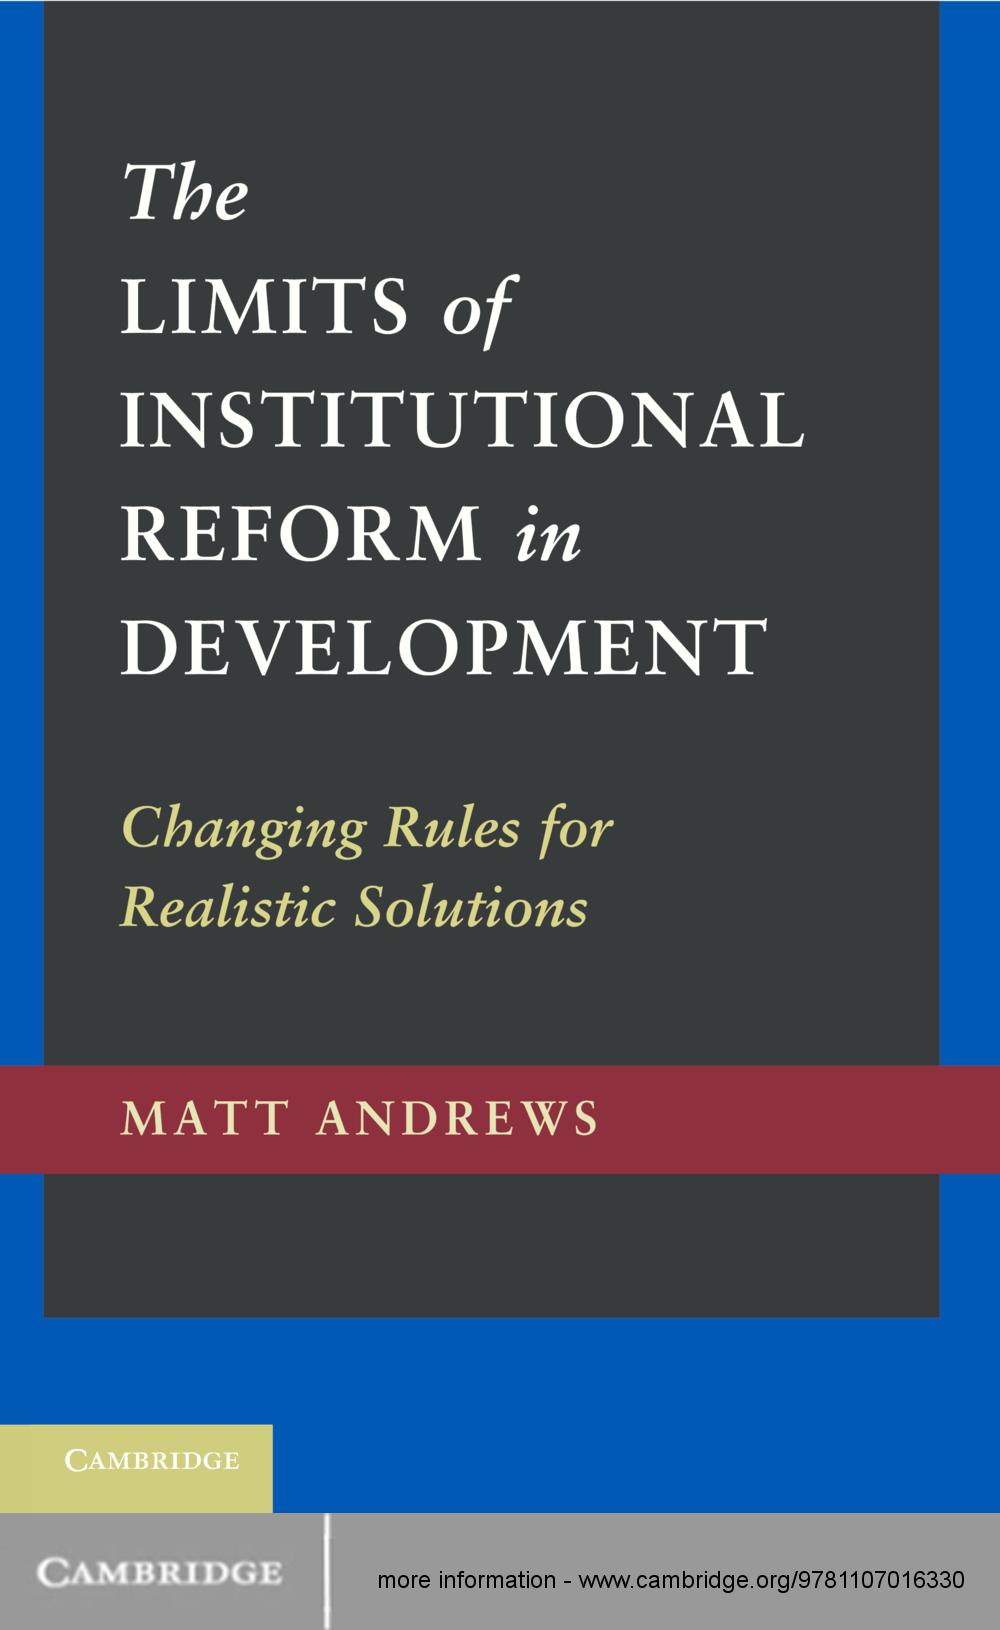 The Limits of Institutional Reform in Development Changing Rules for Realistic Solutions